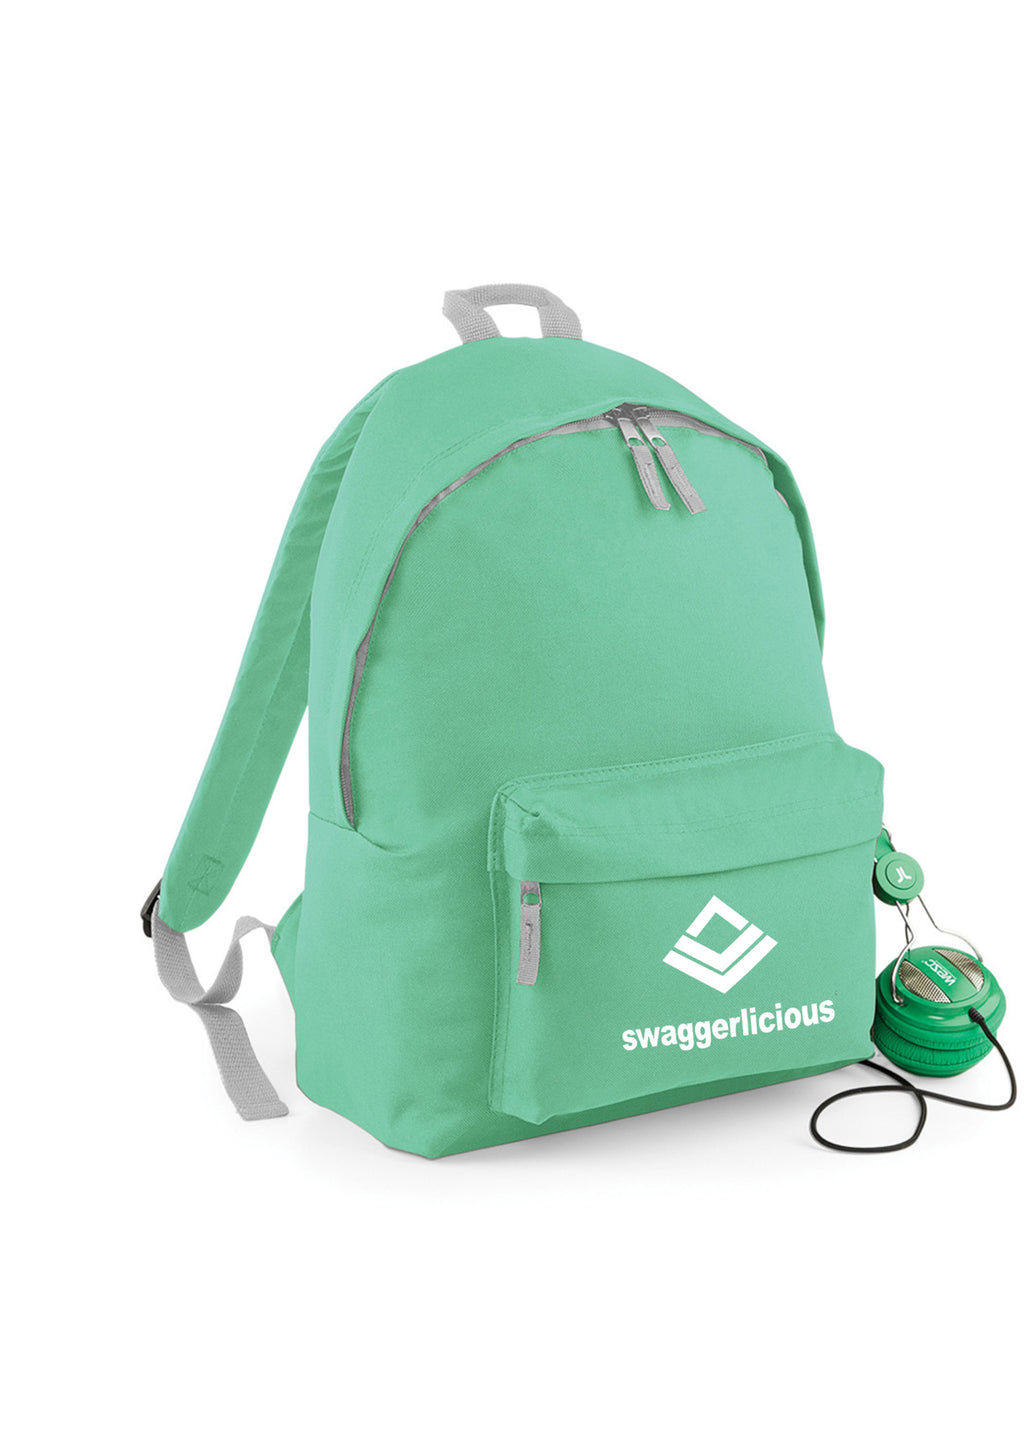 MINT GREEN SWAGGERLICIOUS BACKPACK - swaggerlicious-clothing.com